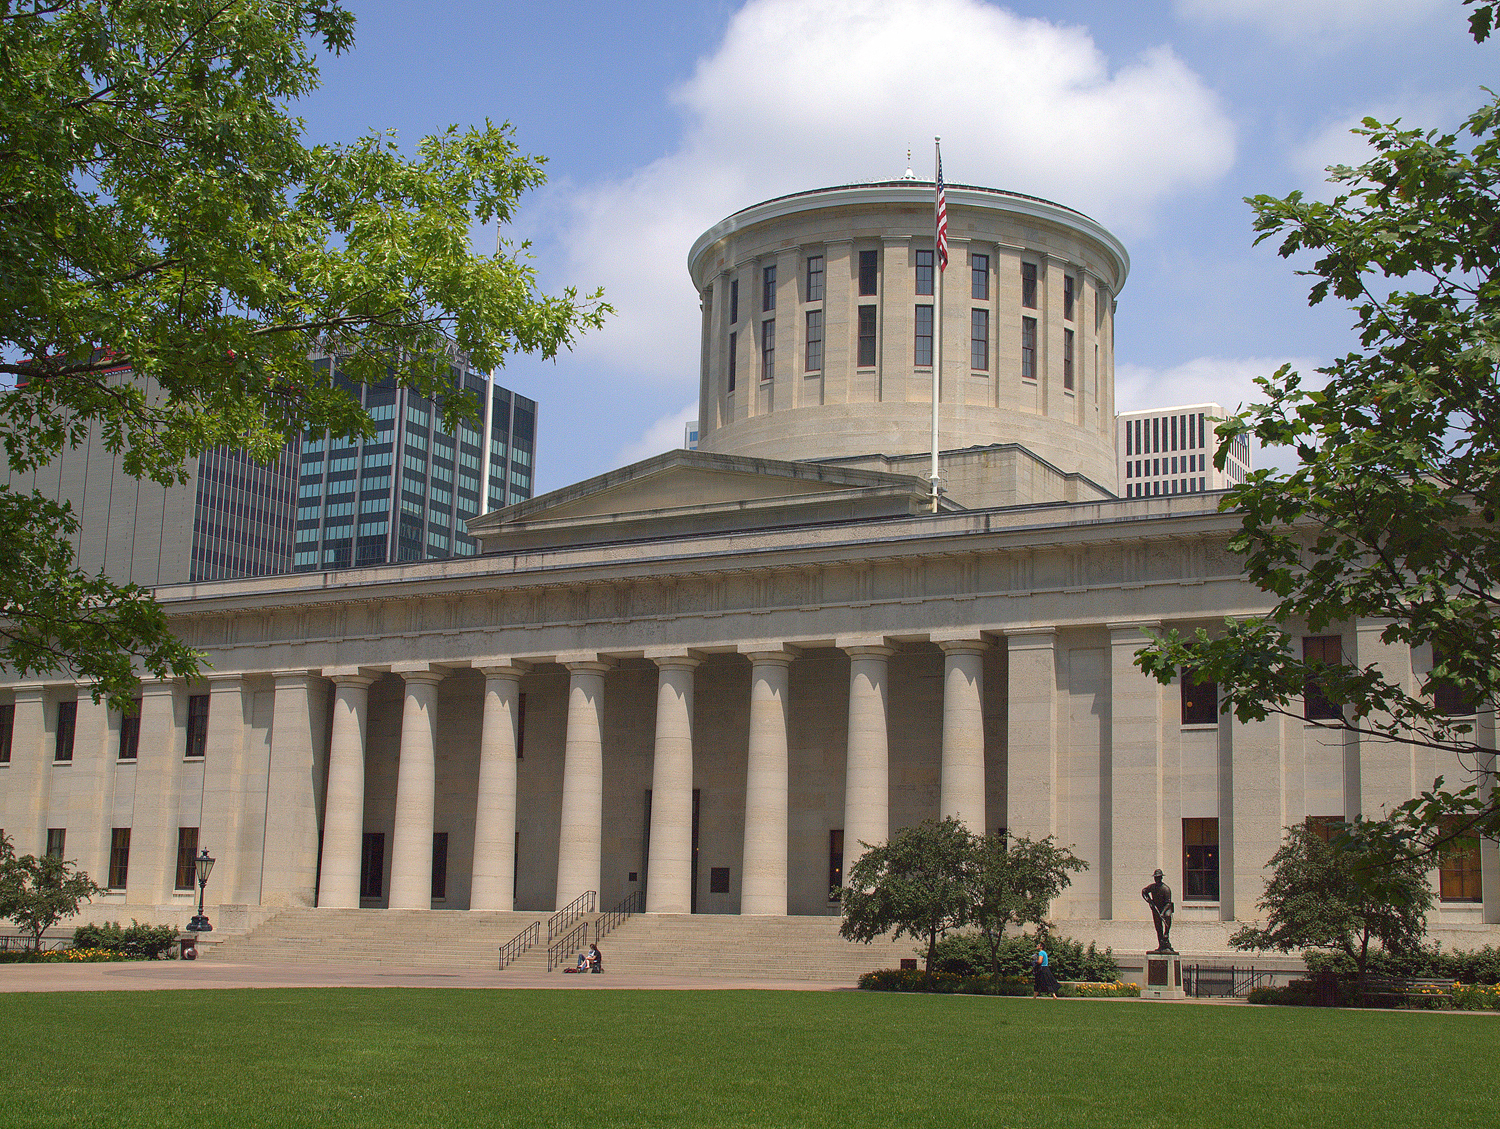 Ohio's capitol building in Columbus houses the state's Congress and is where legislation such as House Bill 565 are proposed.